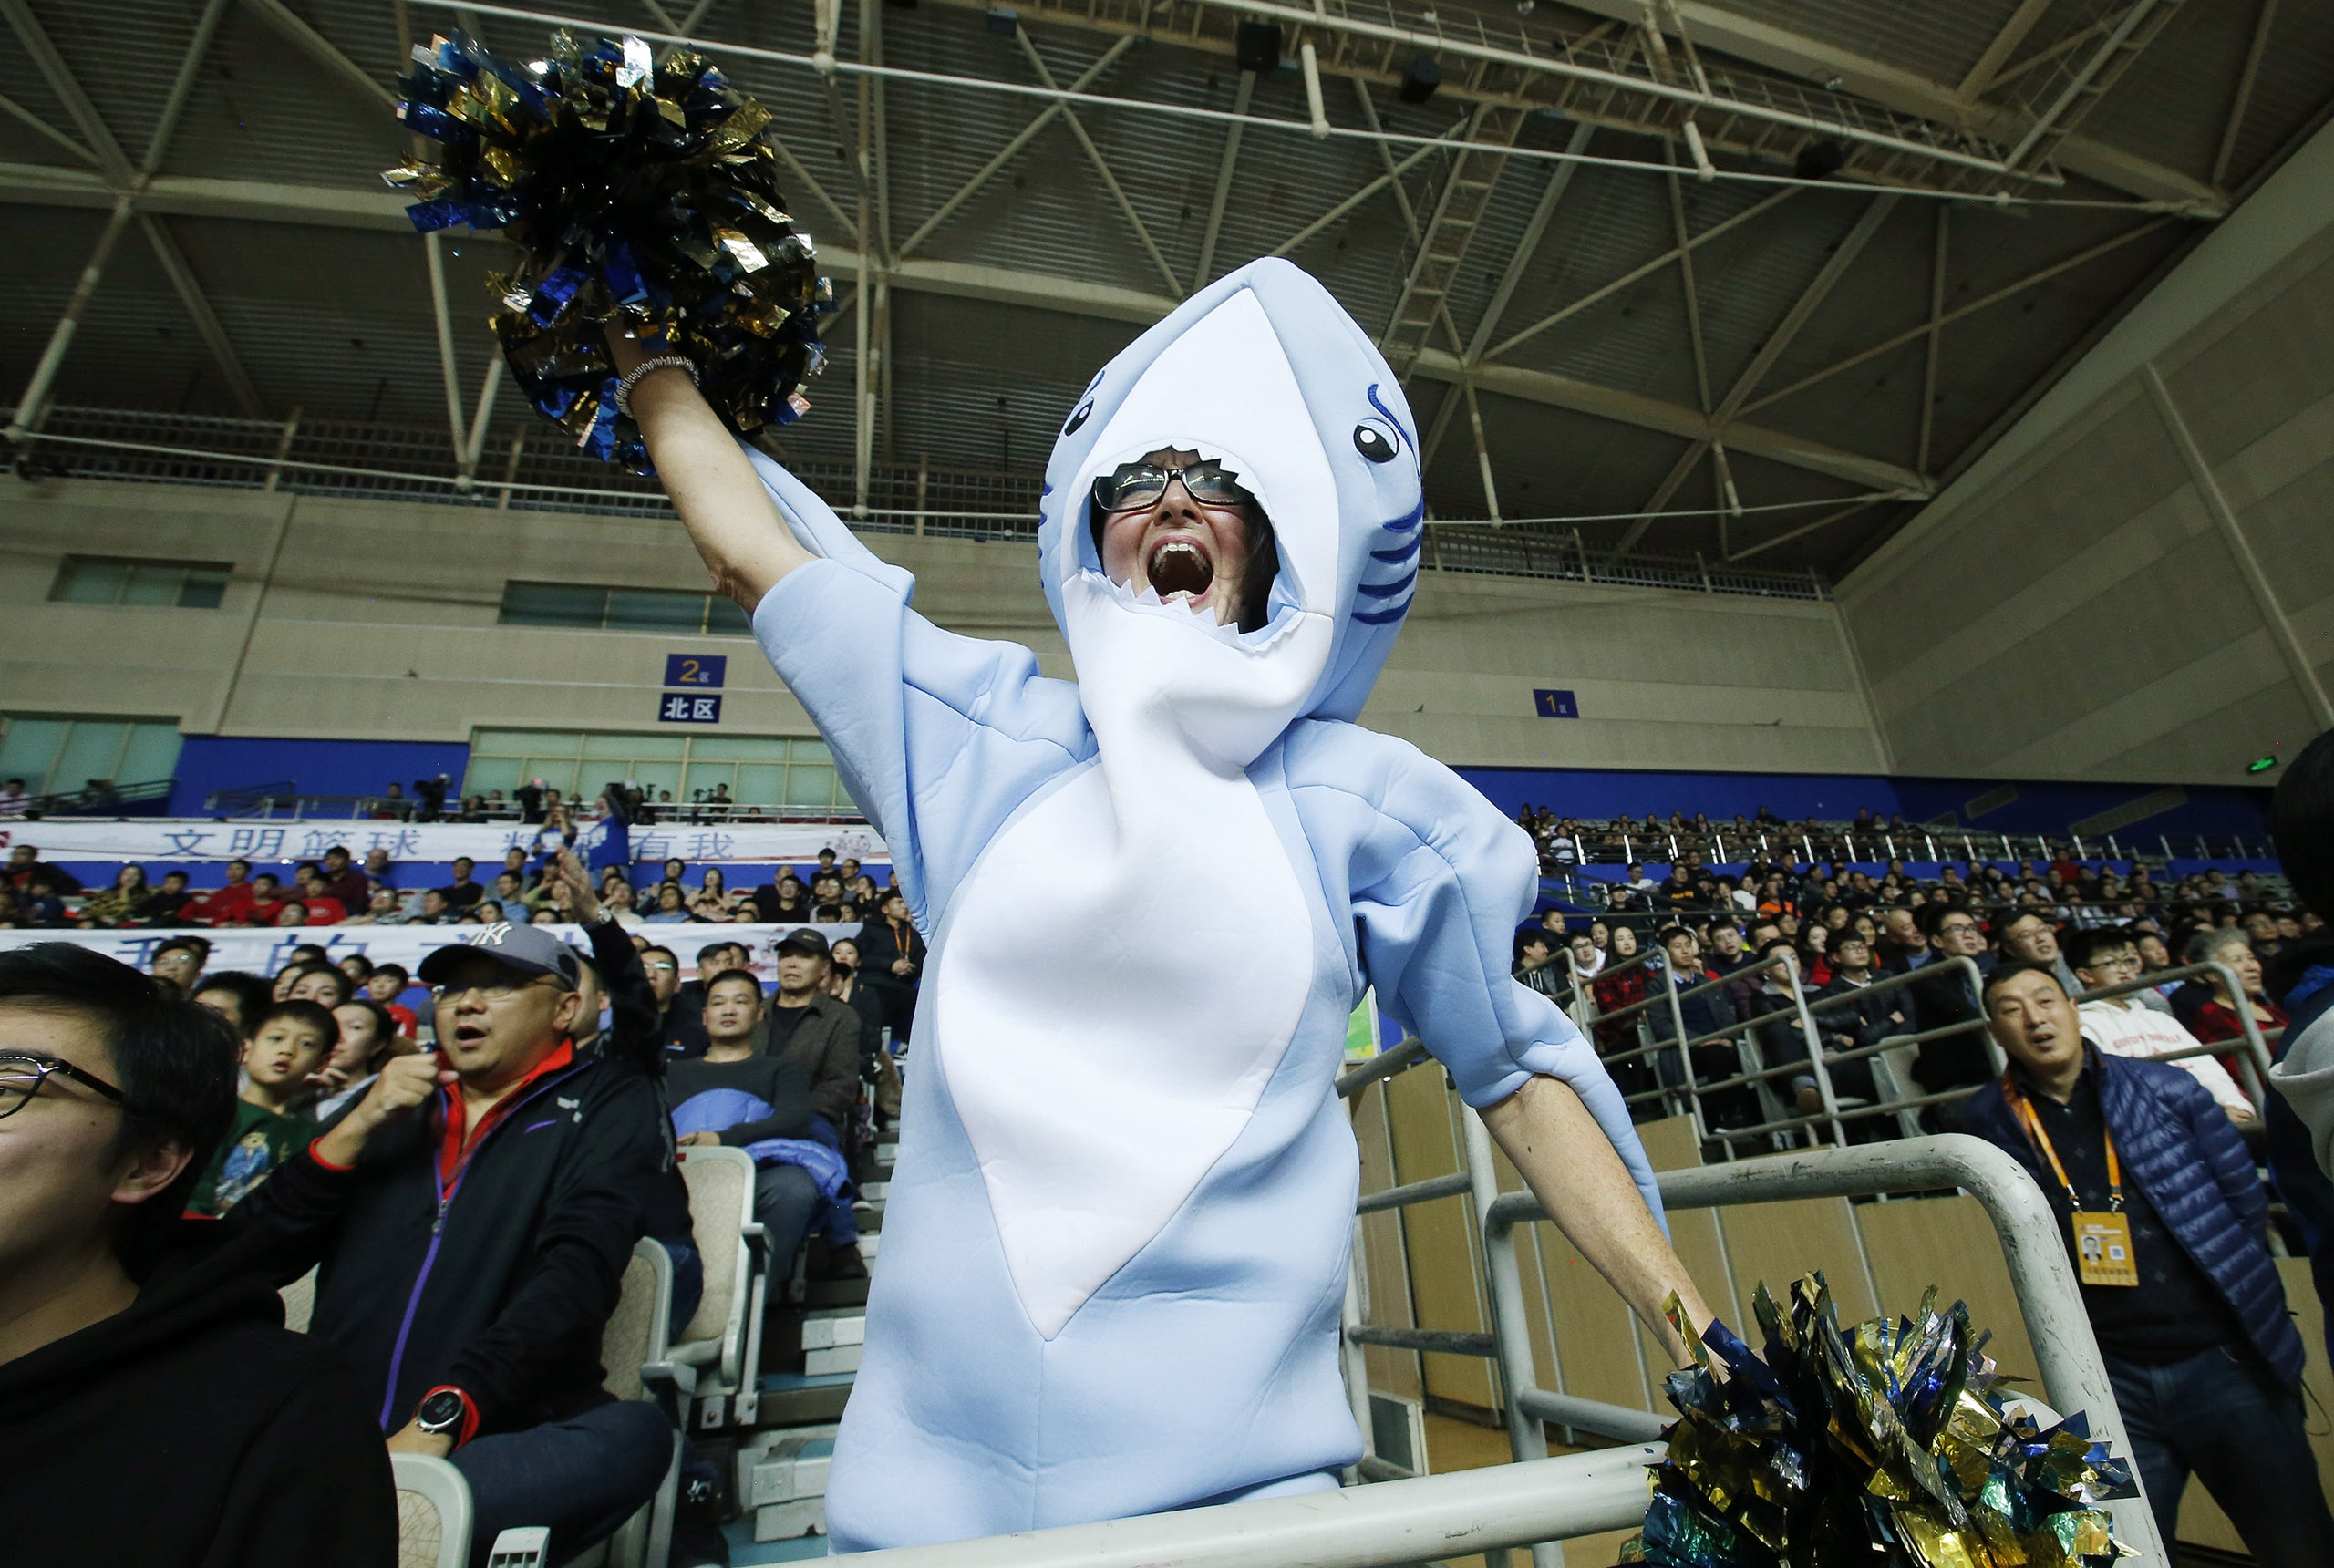 Jeffrey D. Allred, Deseret News Molly Raatz dons a shark costume and cheers on the Shanghai Sharks as they play the Bayi Rockets in Shanghai, China, on Jan. 21, 2018.